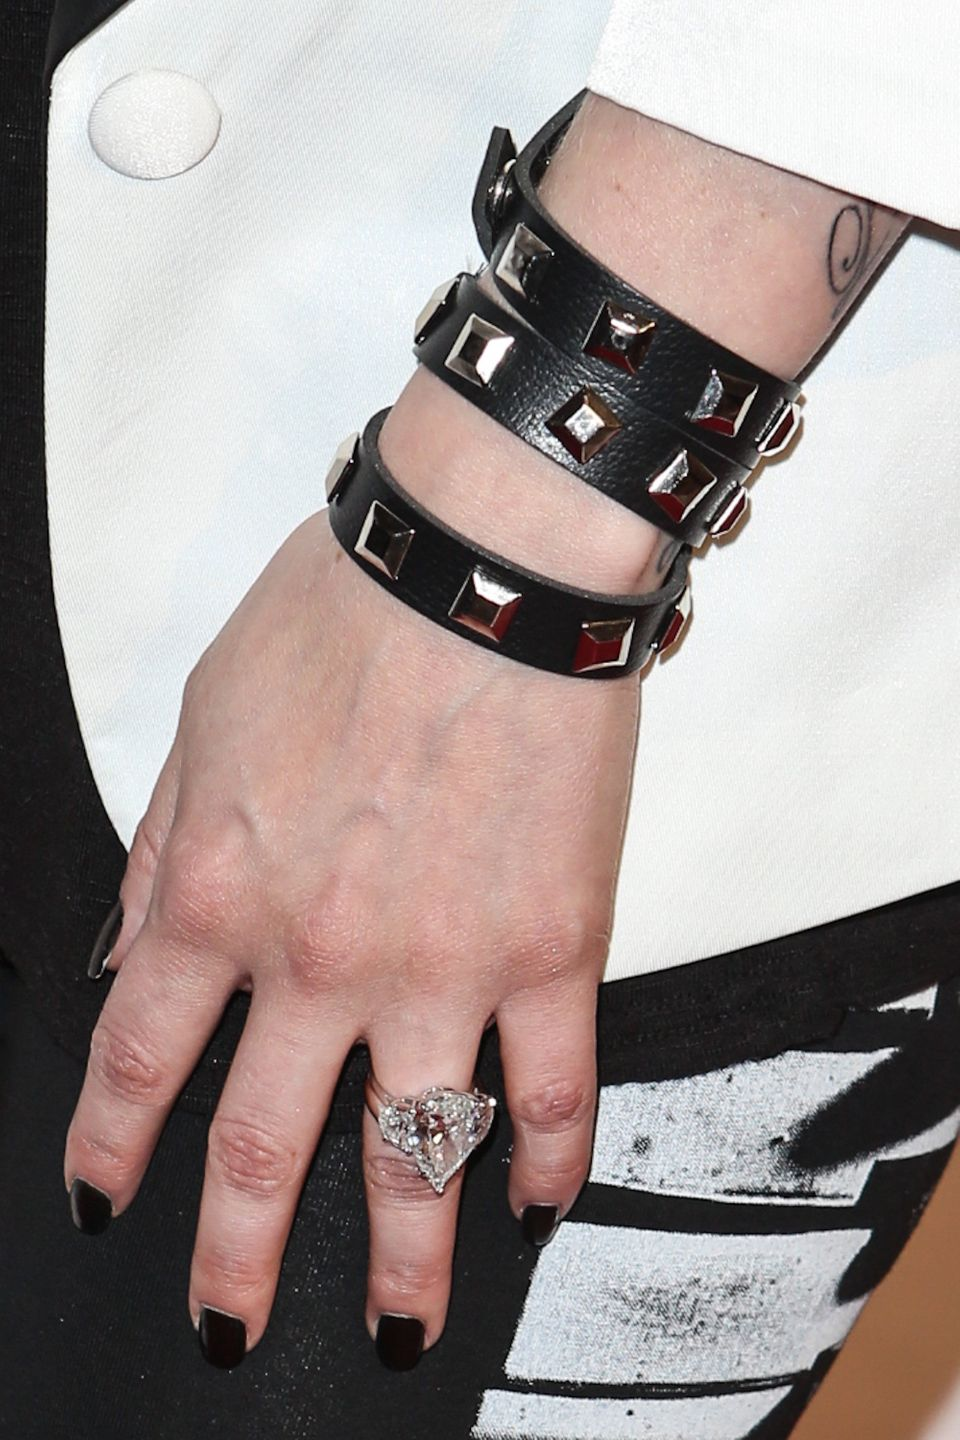 """Nickelback frontman Chad Kroeger <a href=""""http://stylenews.peoplestylewatch.com/2012/08/23/avril-lavigne-engagement-ring-pict"""